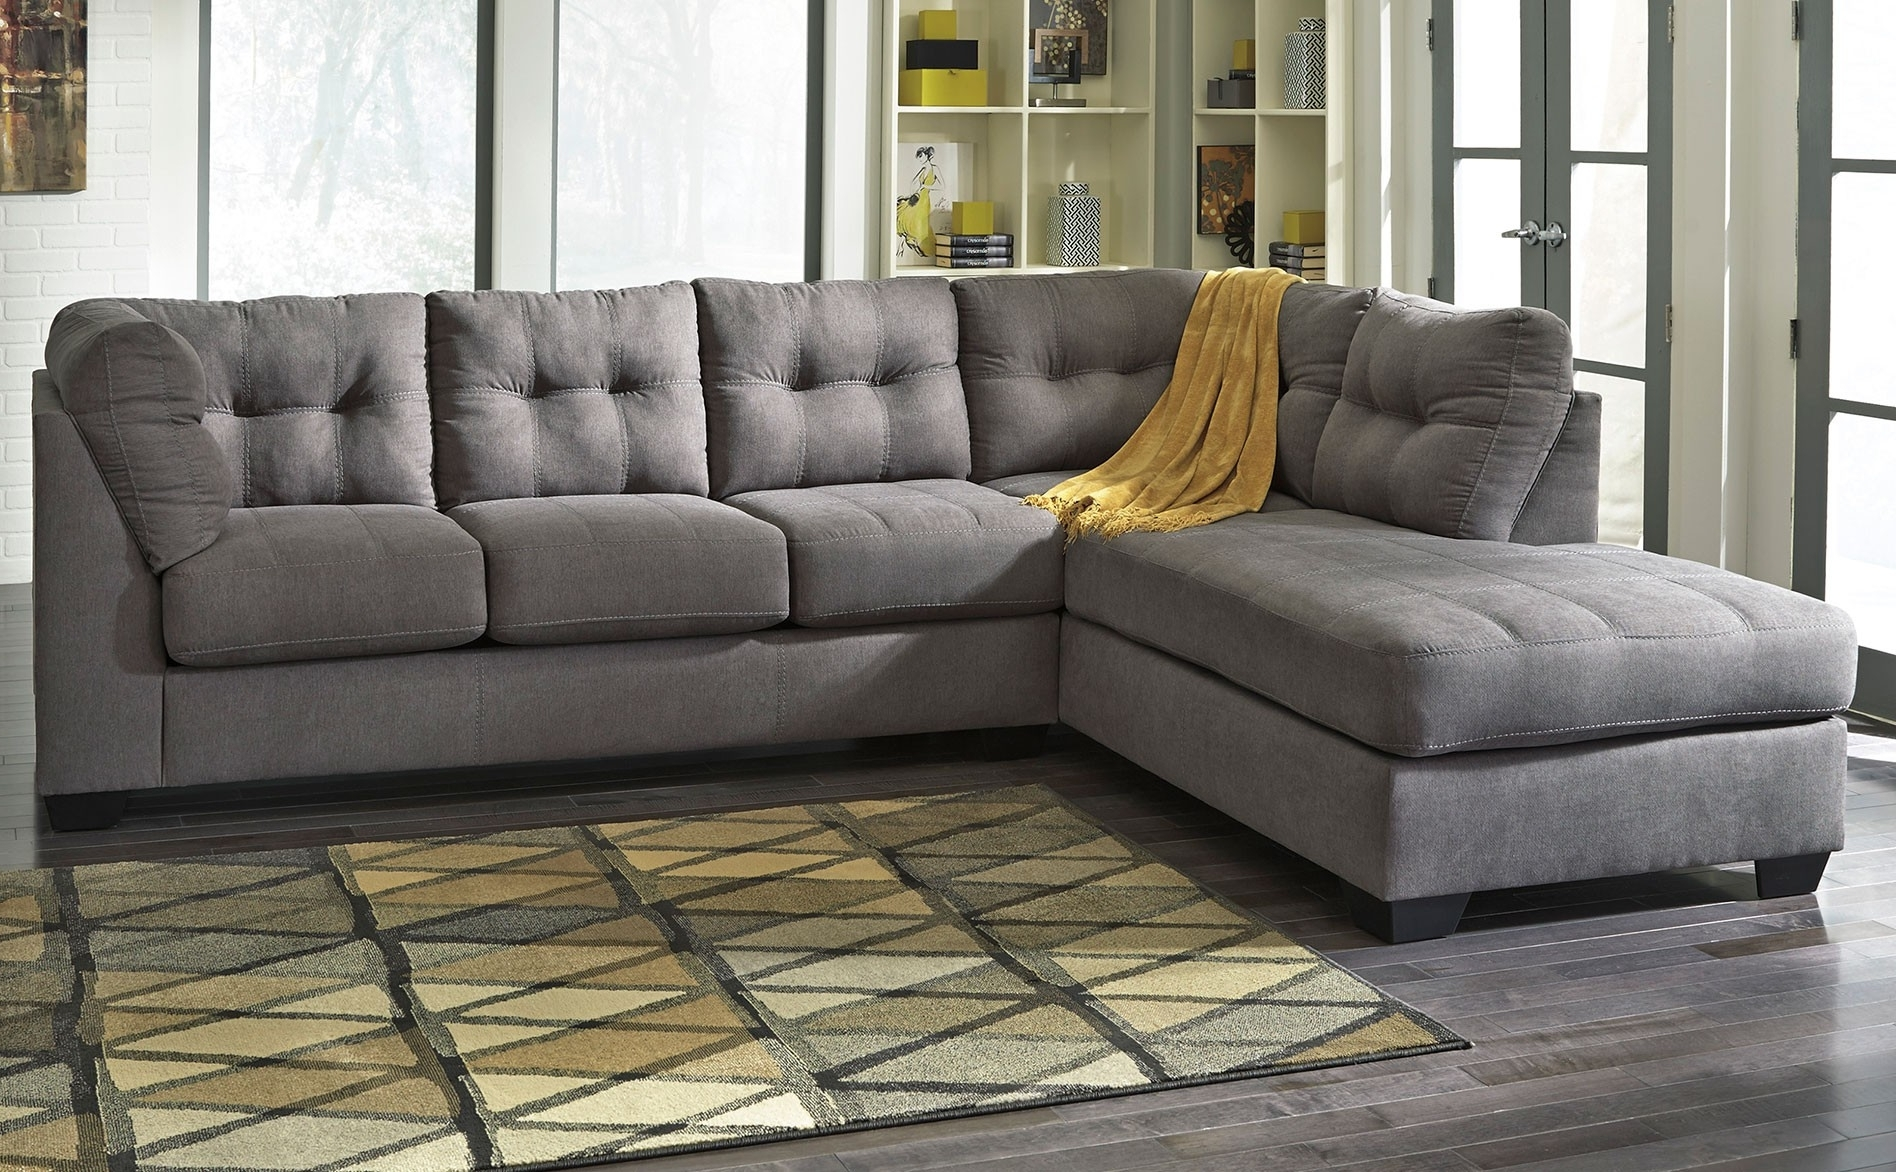 Famous Light Grey Sectional Sofa Waverunner Modular Divani Casa Quebec Intended For Quebec Sectional Sofas (View 12 of 15)